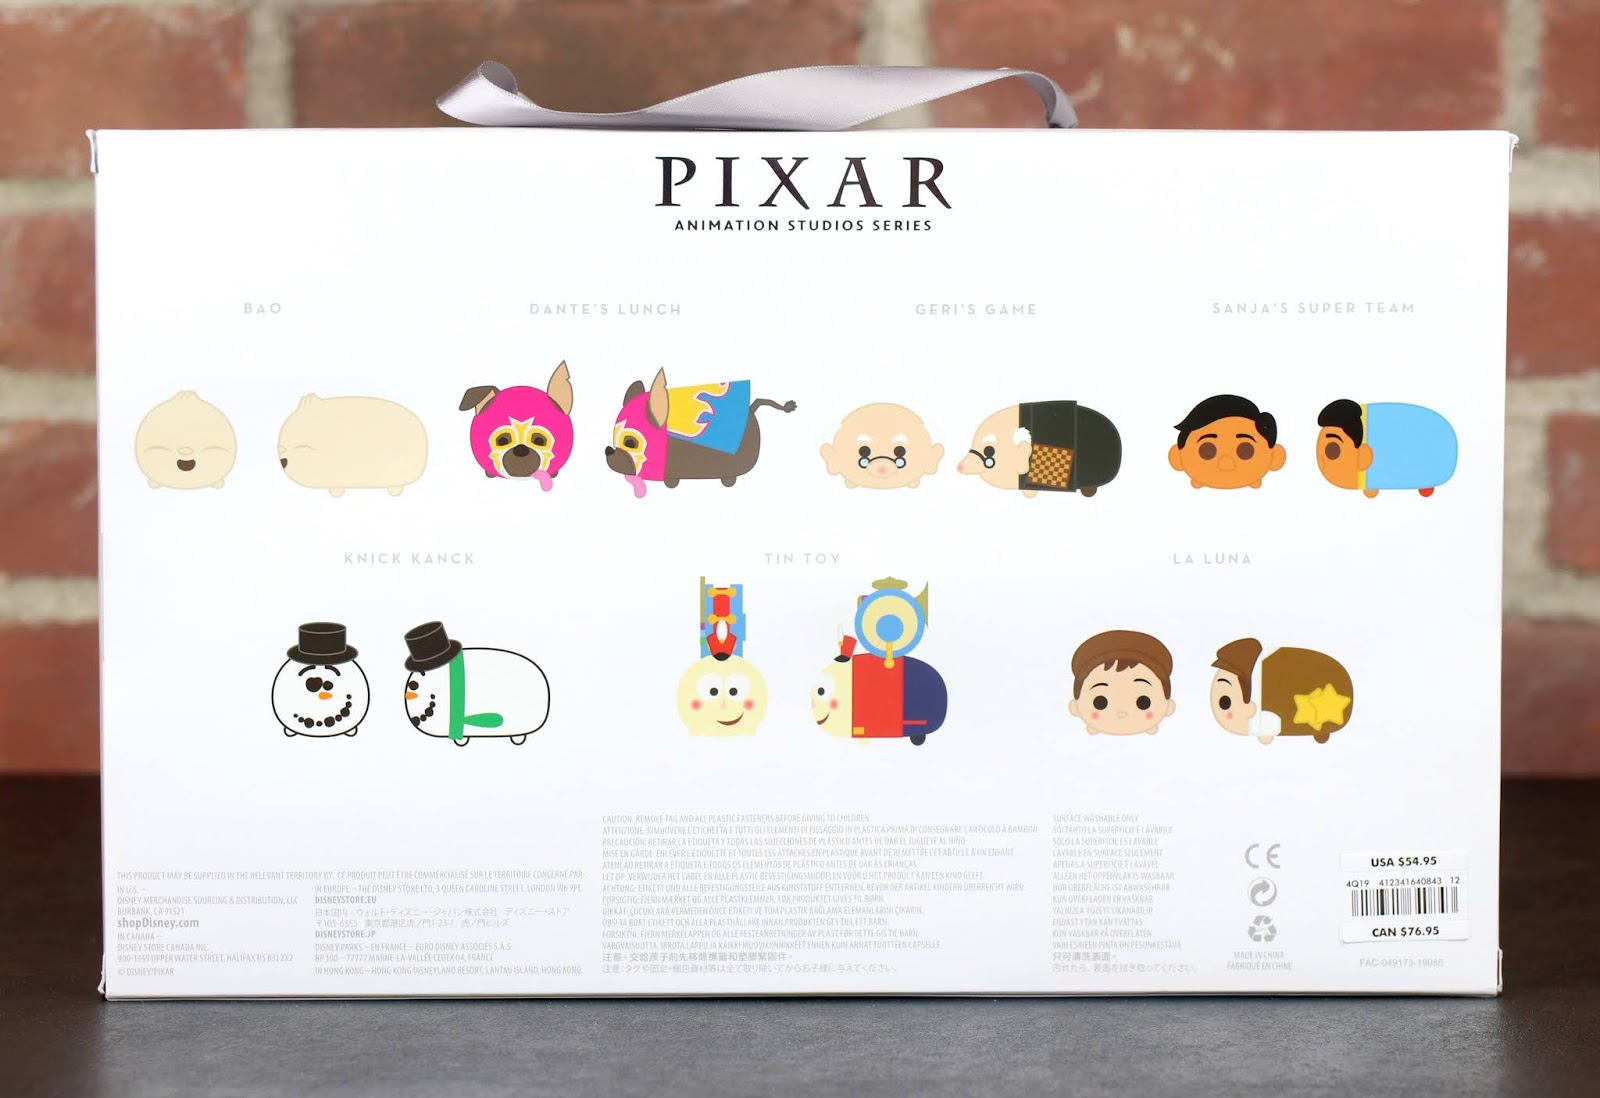 pixar short films tsum tsums 2019 d23 expo